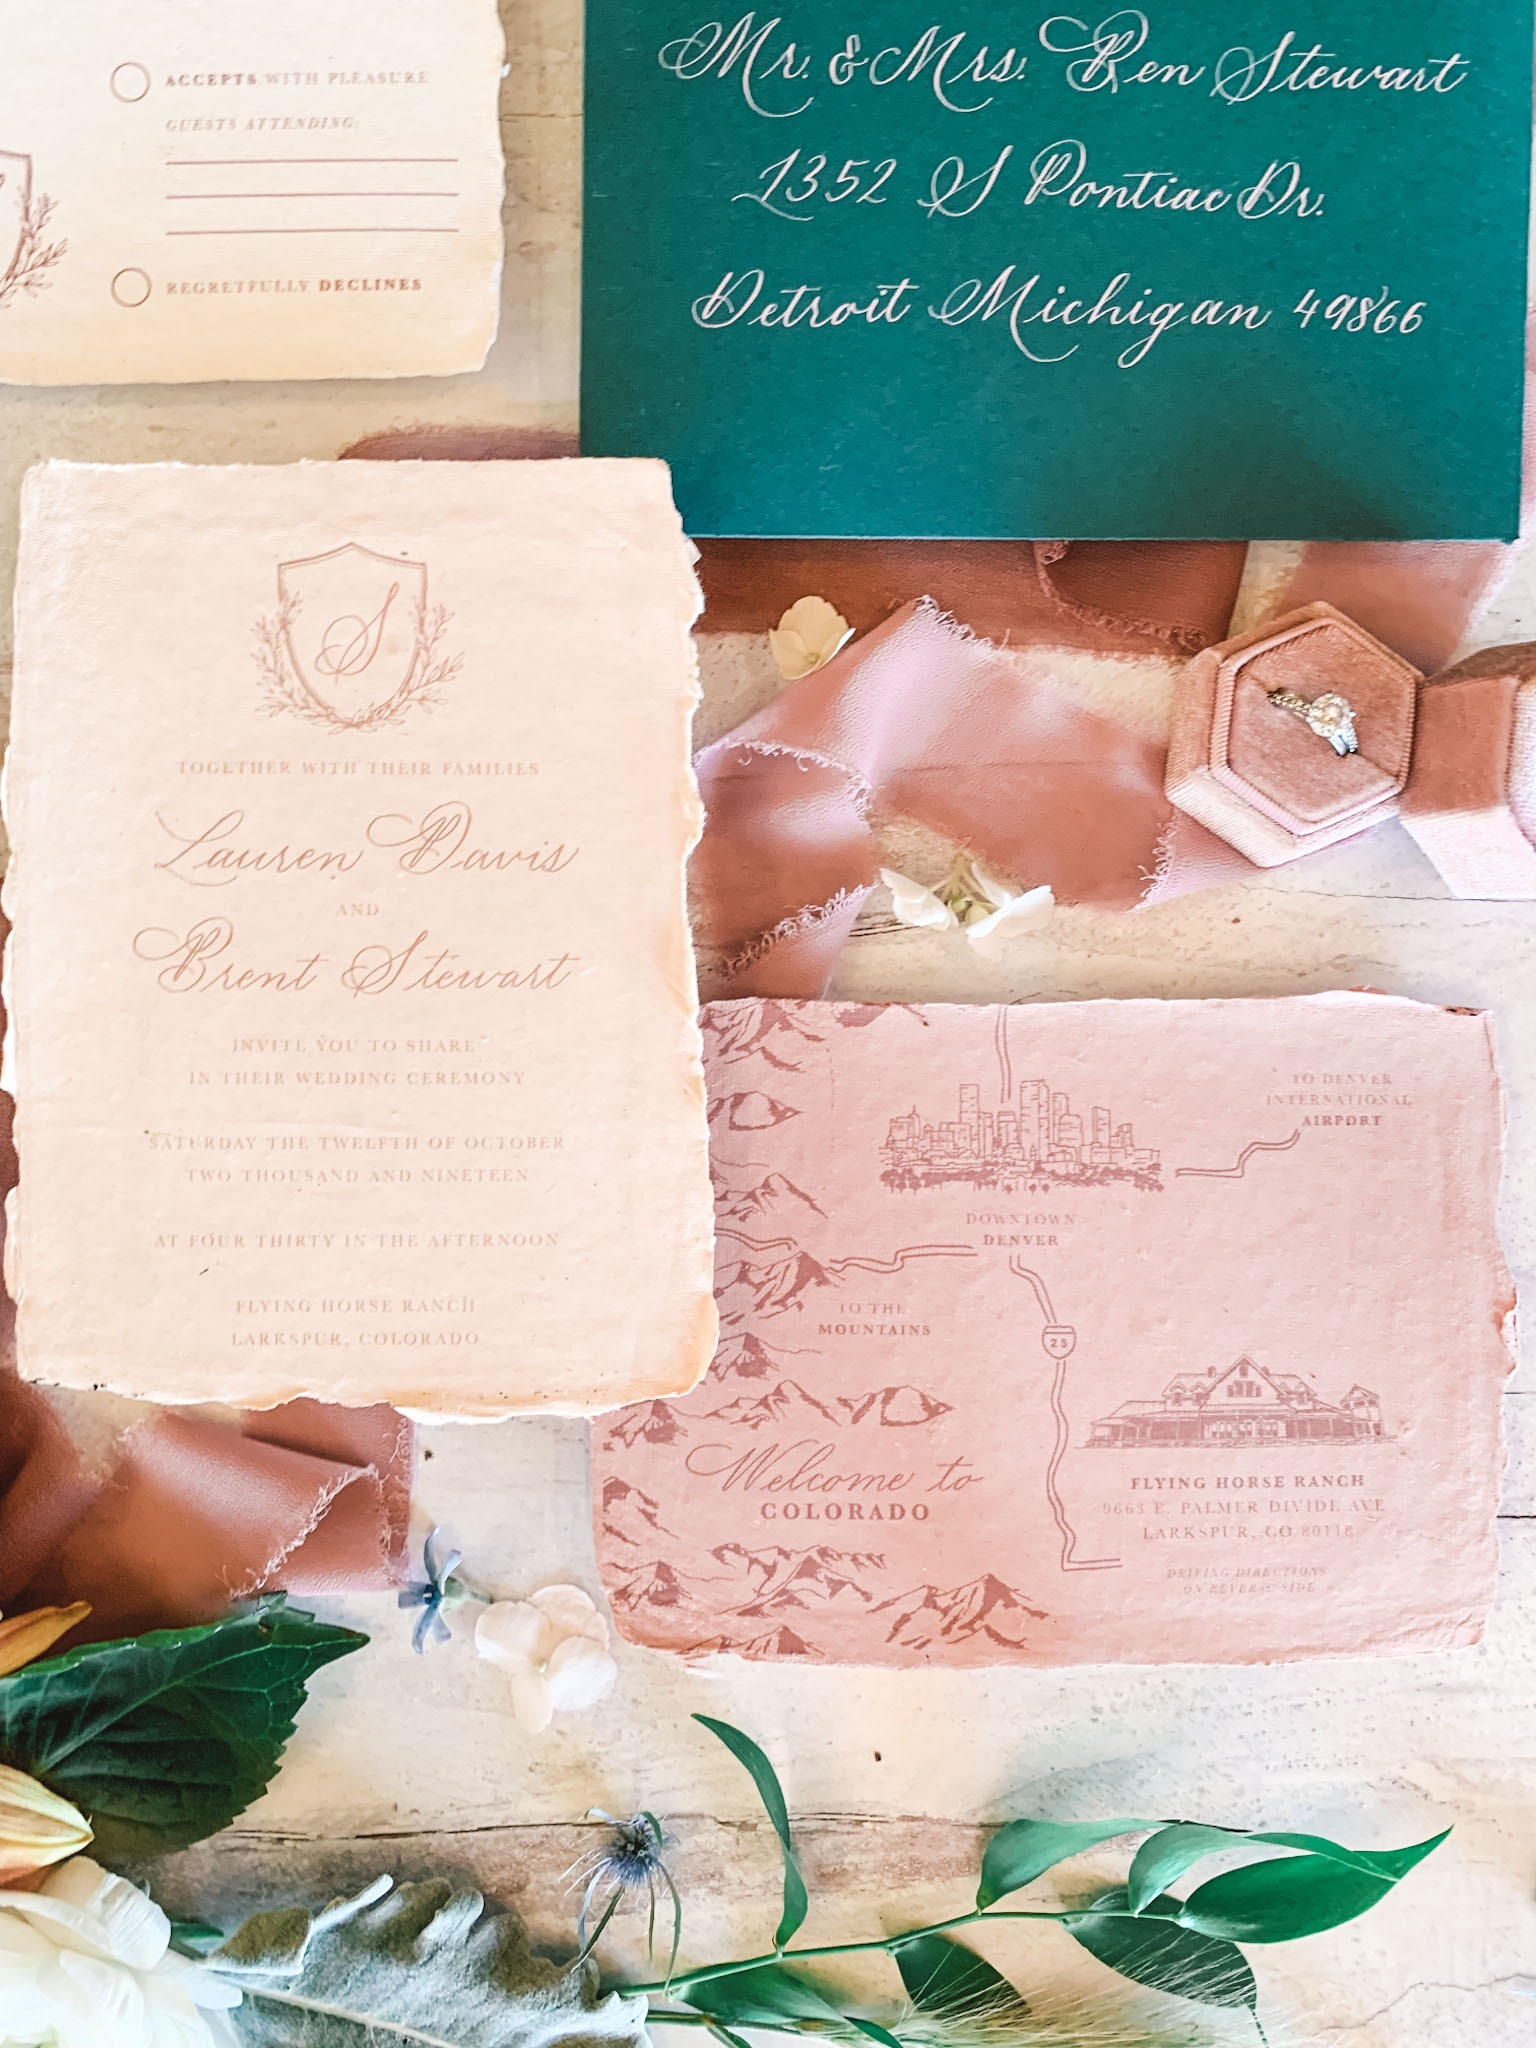 Wedding Stationery - Fully custom Invitations, Save-the-Dates, Envelope Calligraphy and more.